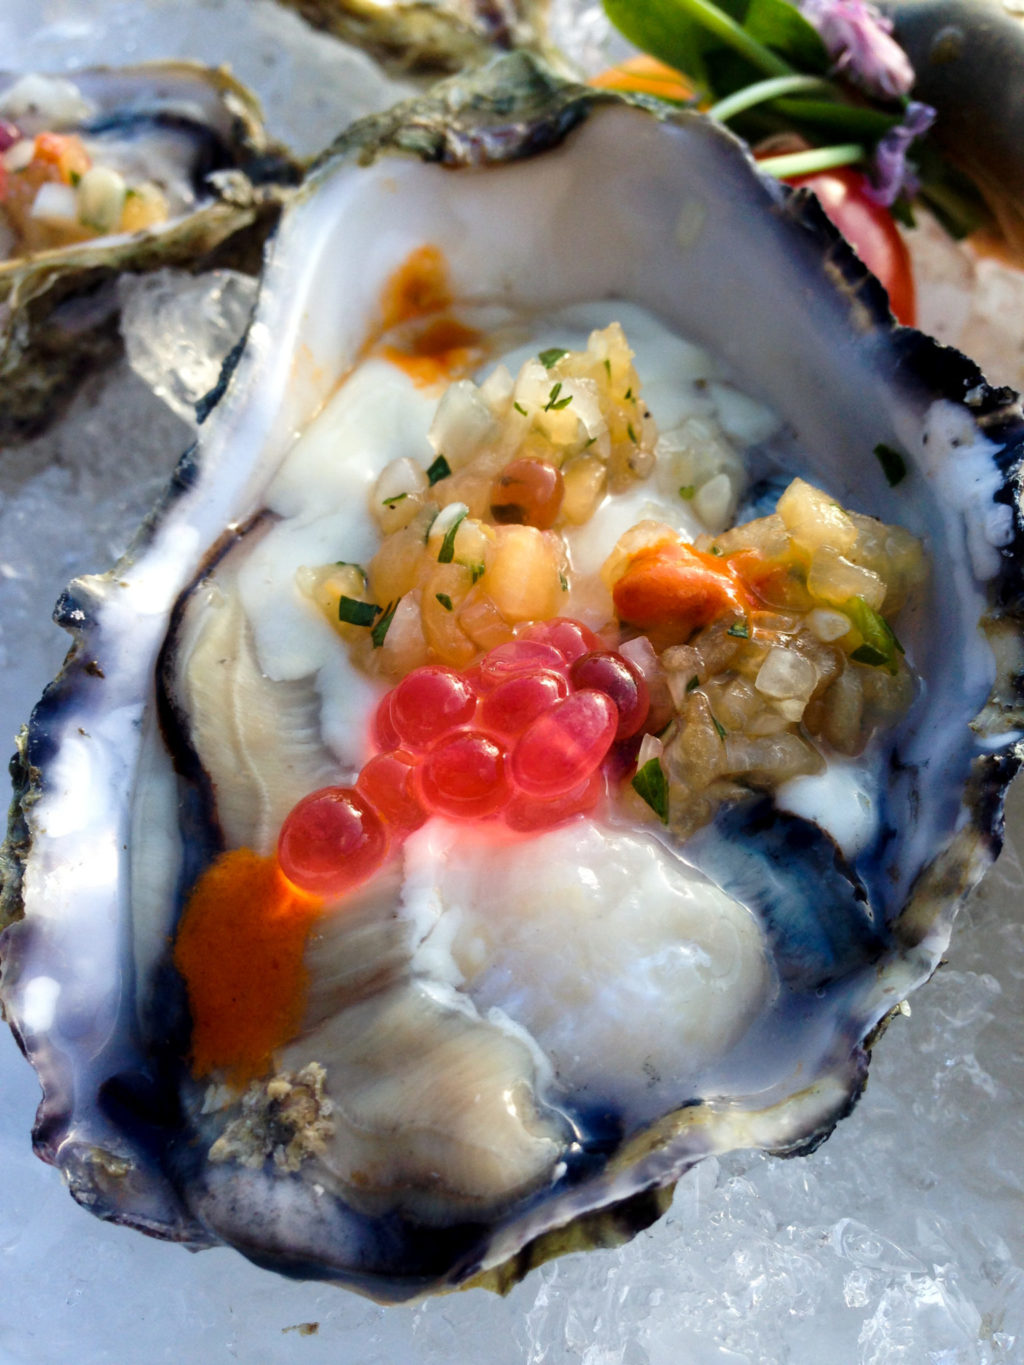 Oysters on the half shell at Mica Restaurant, Spirit Ridge at Nk'Mip Resort. Photo by Gloria J. Chang.